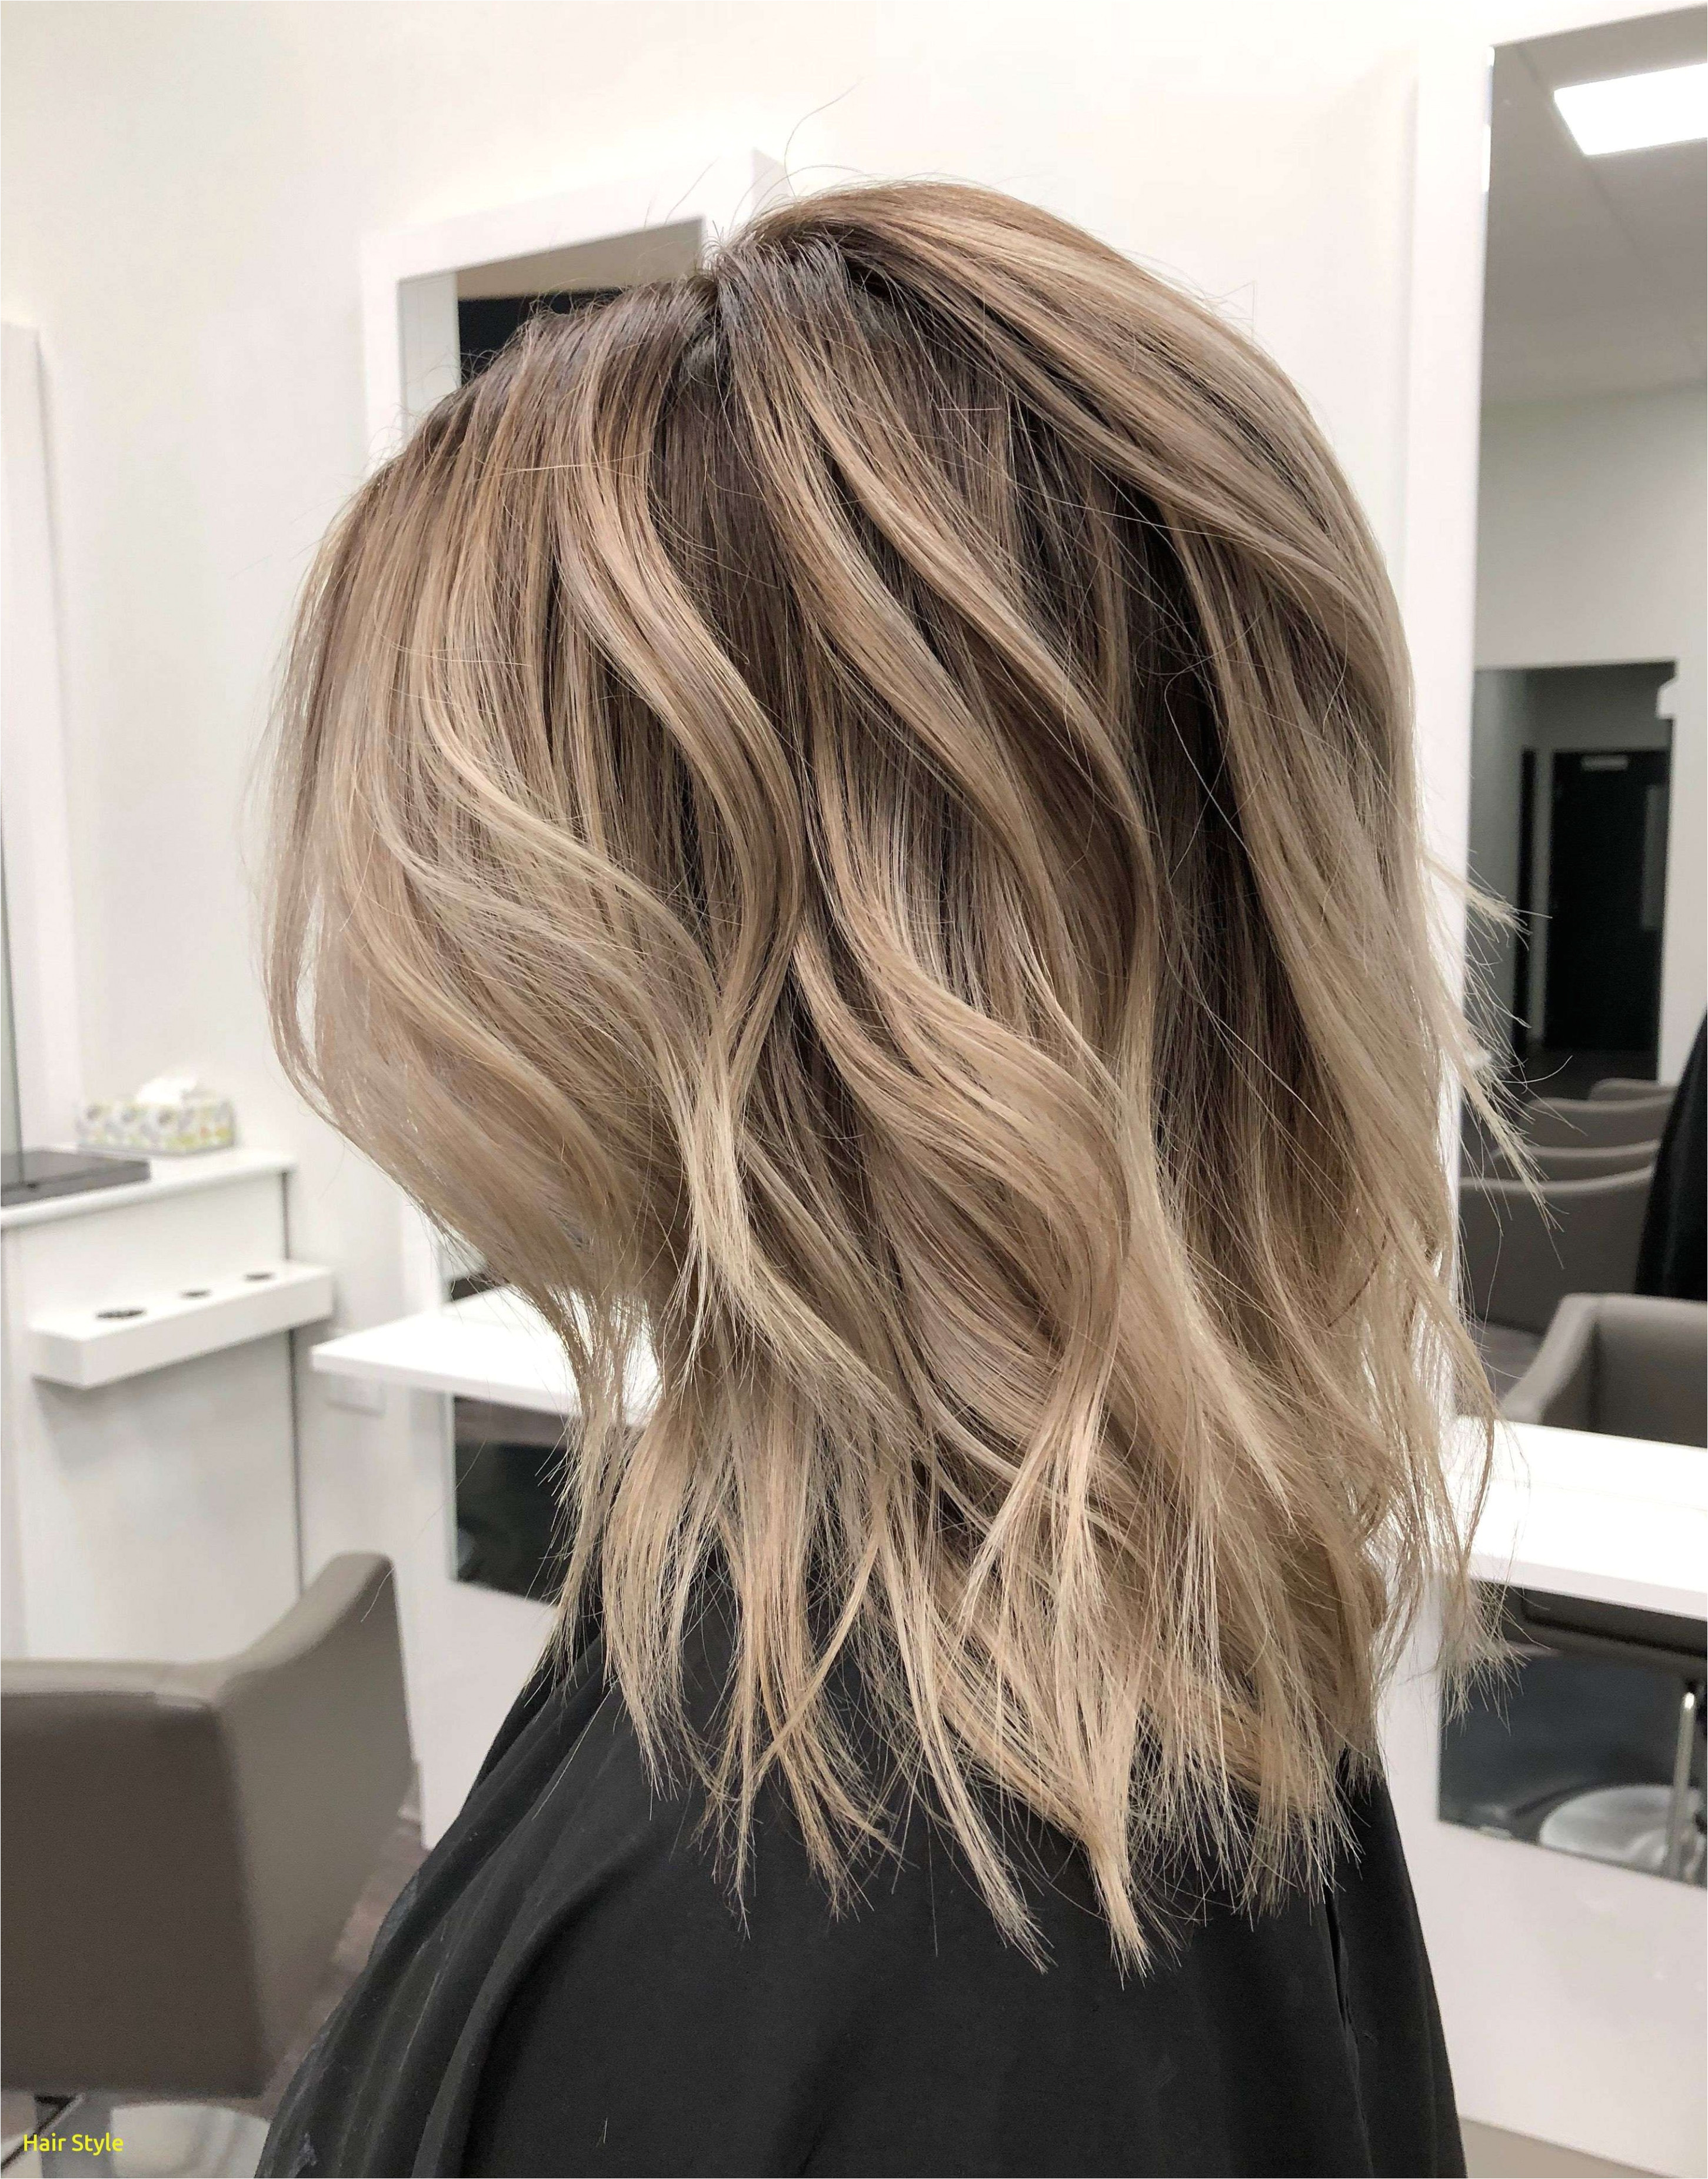 Cool Hairstyles for Girls for School Beautiful 20 Fresh What are some Cute Hairstyles for Medium